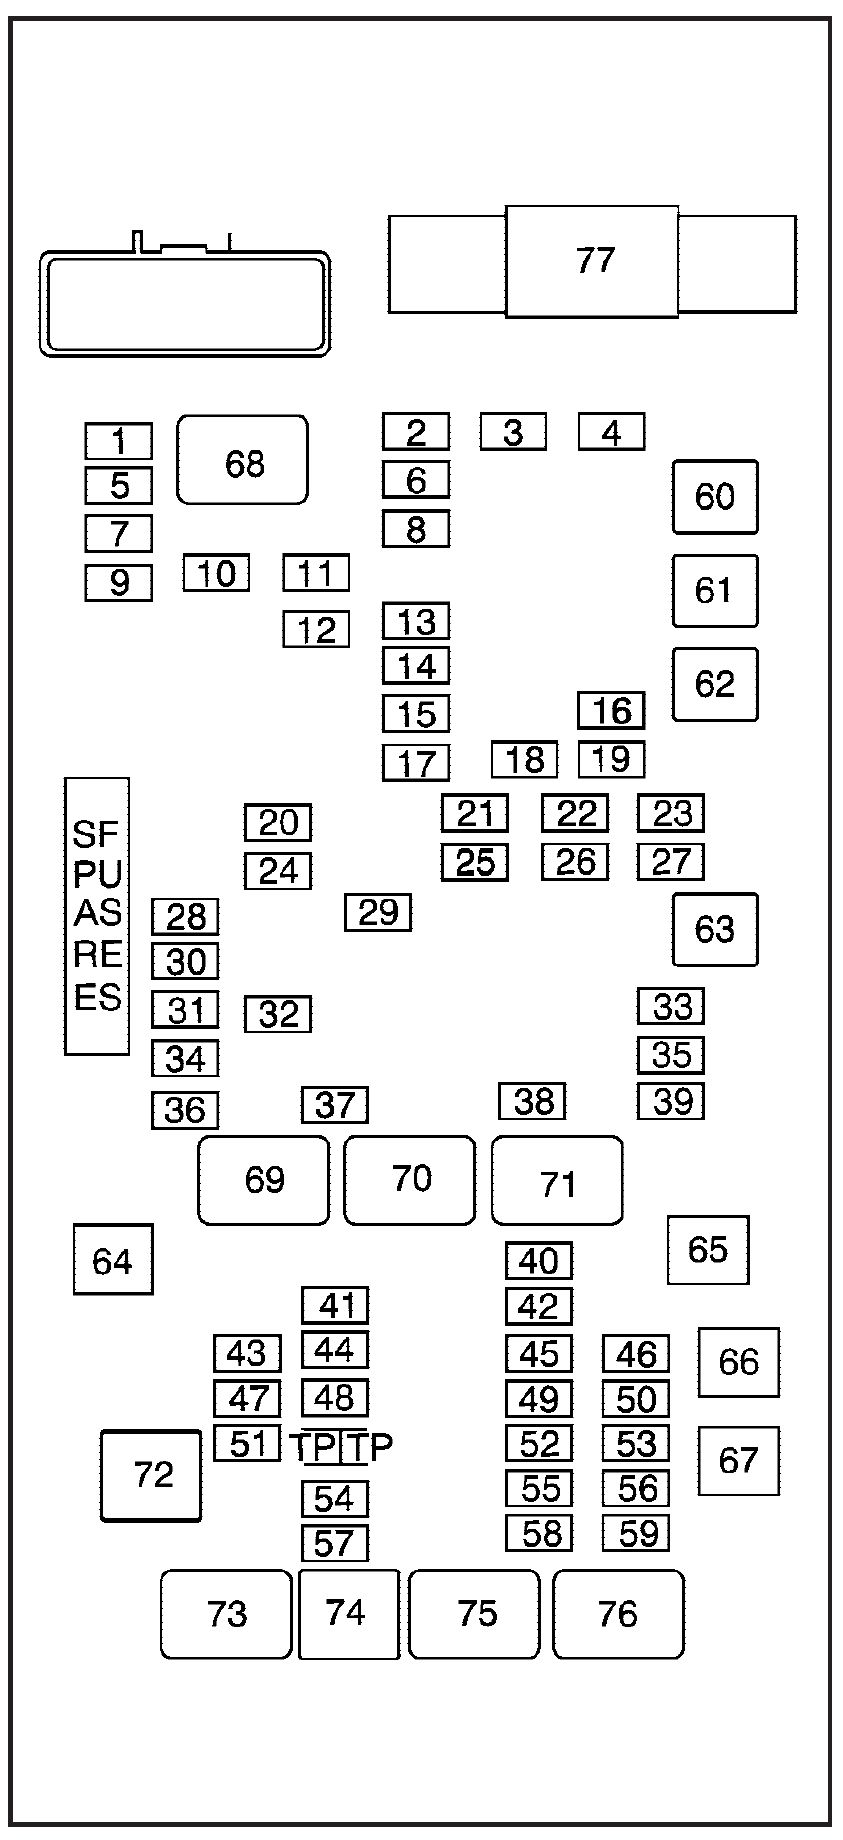 hight resolution of 2009 gmc savana fuse box diagram wiring diagrams 2010 gmc savana 1500 2000 gmc savana fuse box